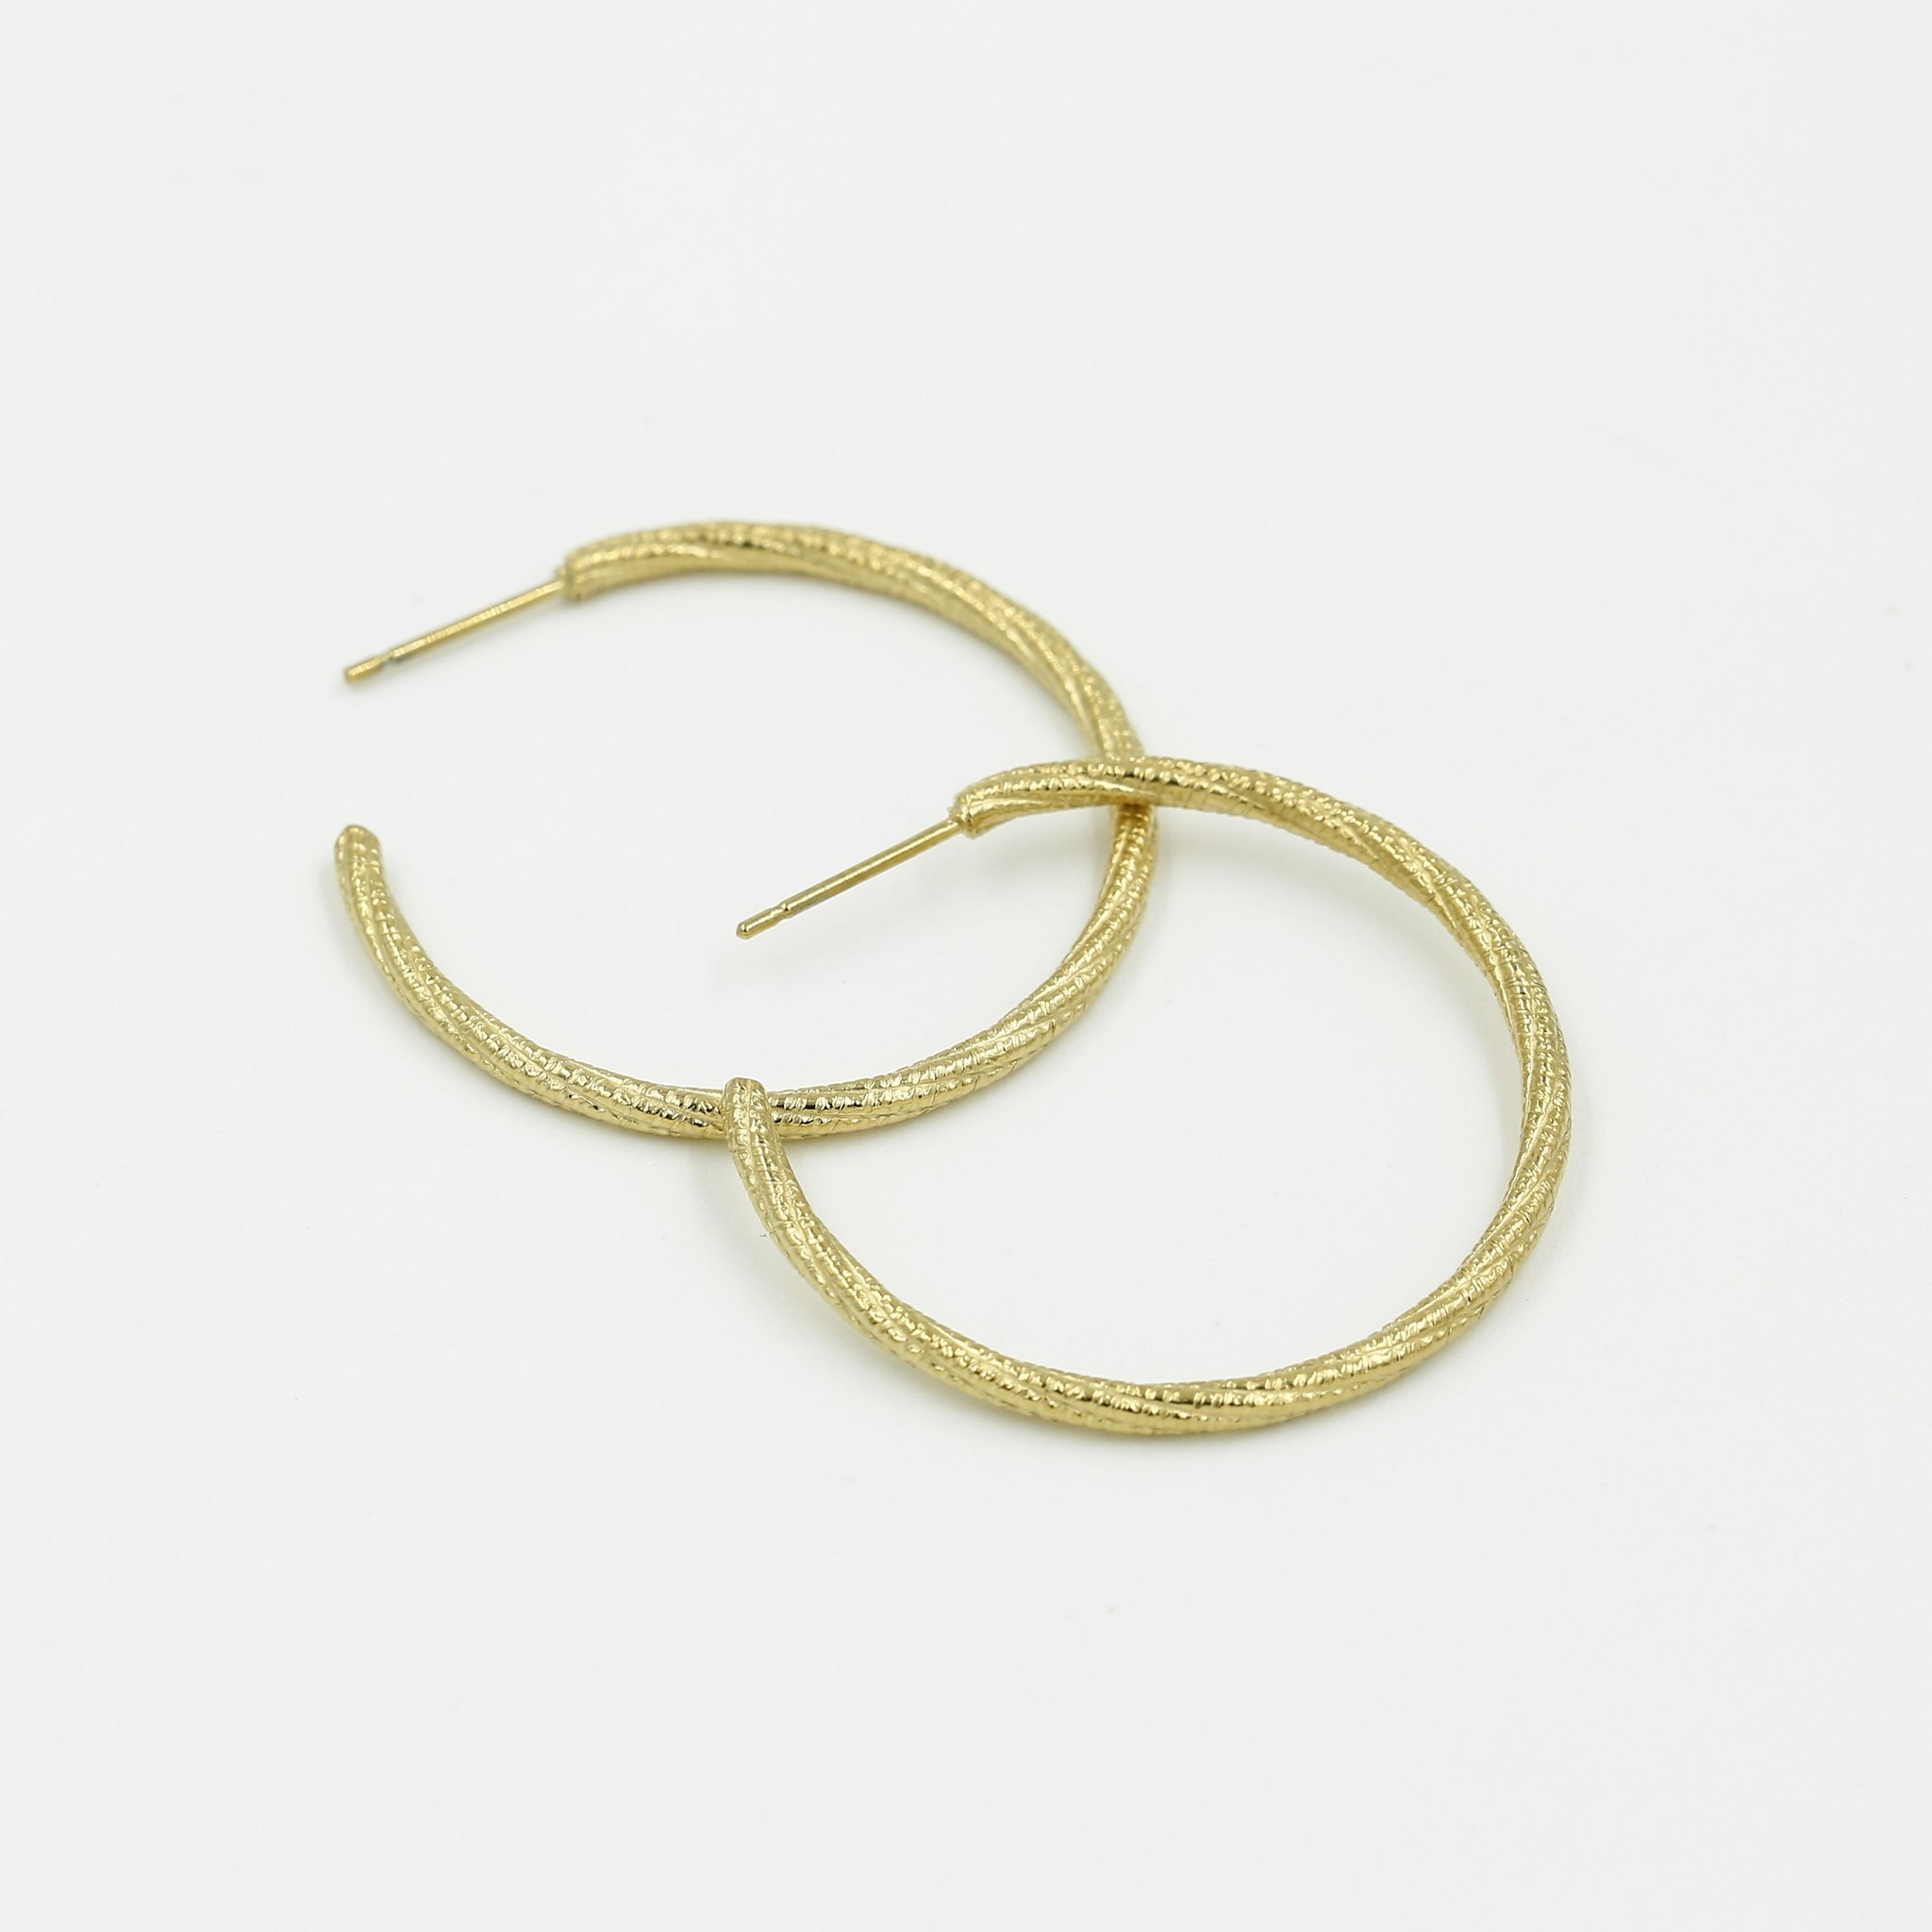 Stainless Steel Hoop Earrings with Shiney Pattern